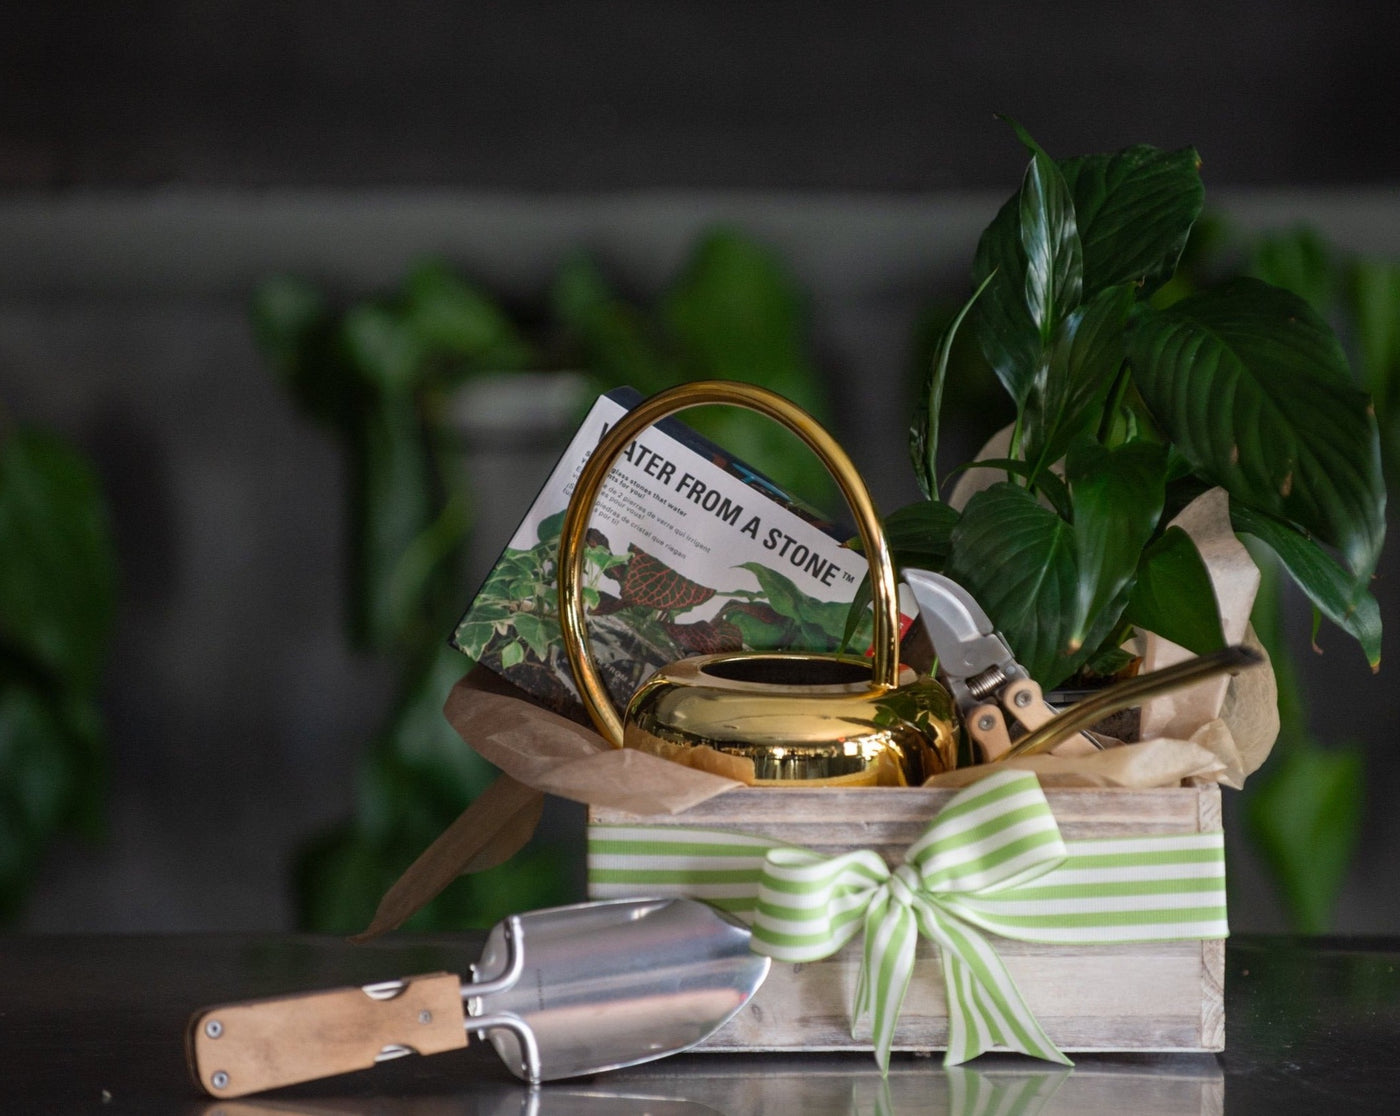 Garden Bounty Box is a wooden gift box filled with a gold watering can, gardening tools, water from a stone, and a potted plant, finished with a bow